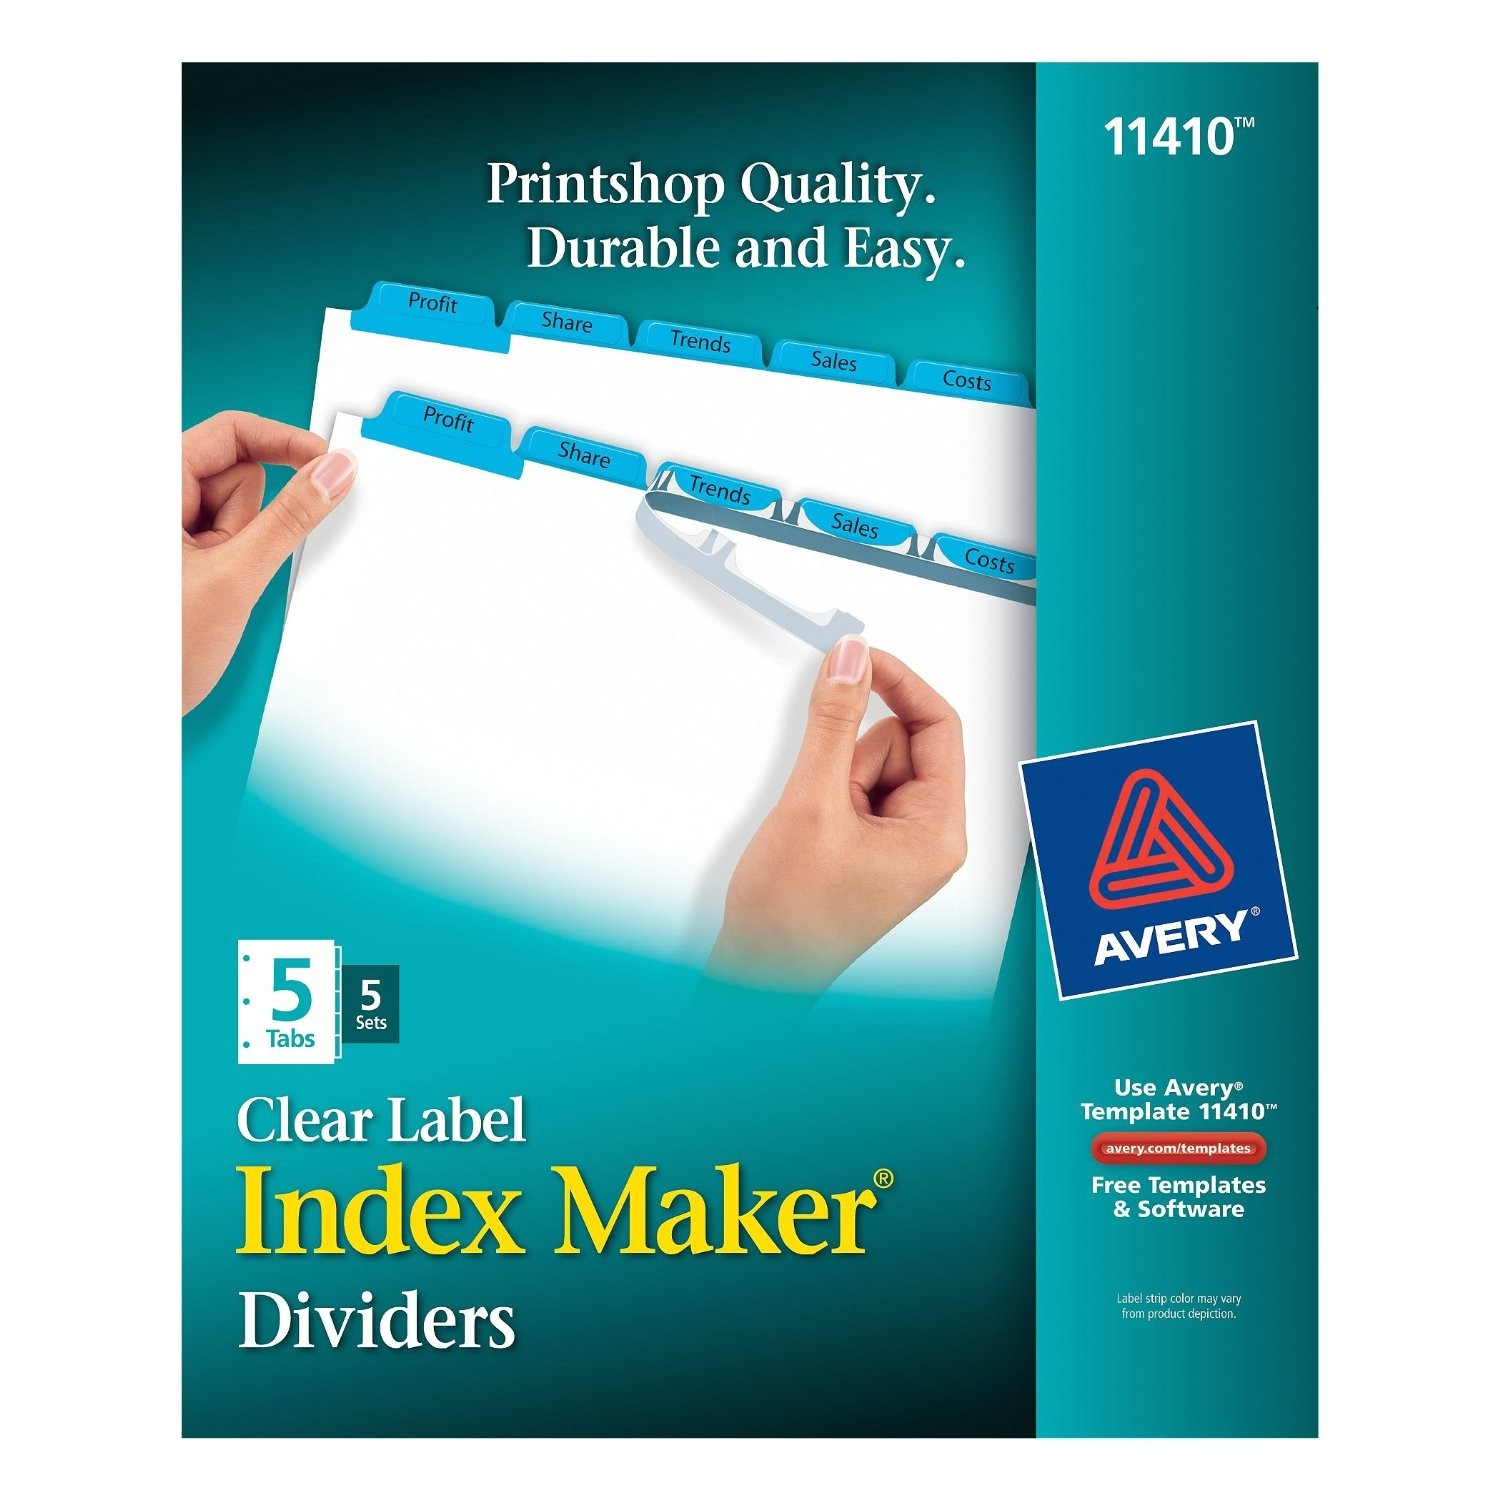 avery index maker clear label dividers easy apply label strip 5 tab blue